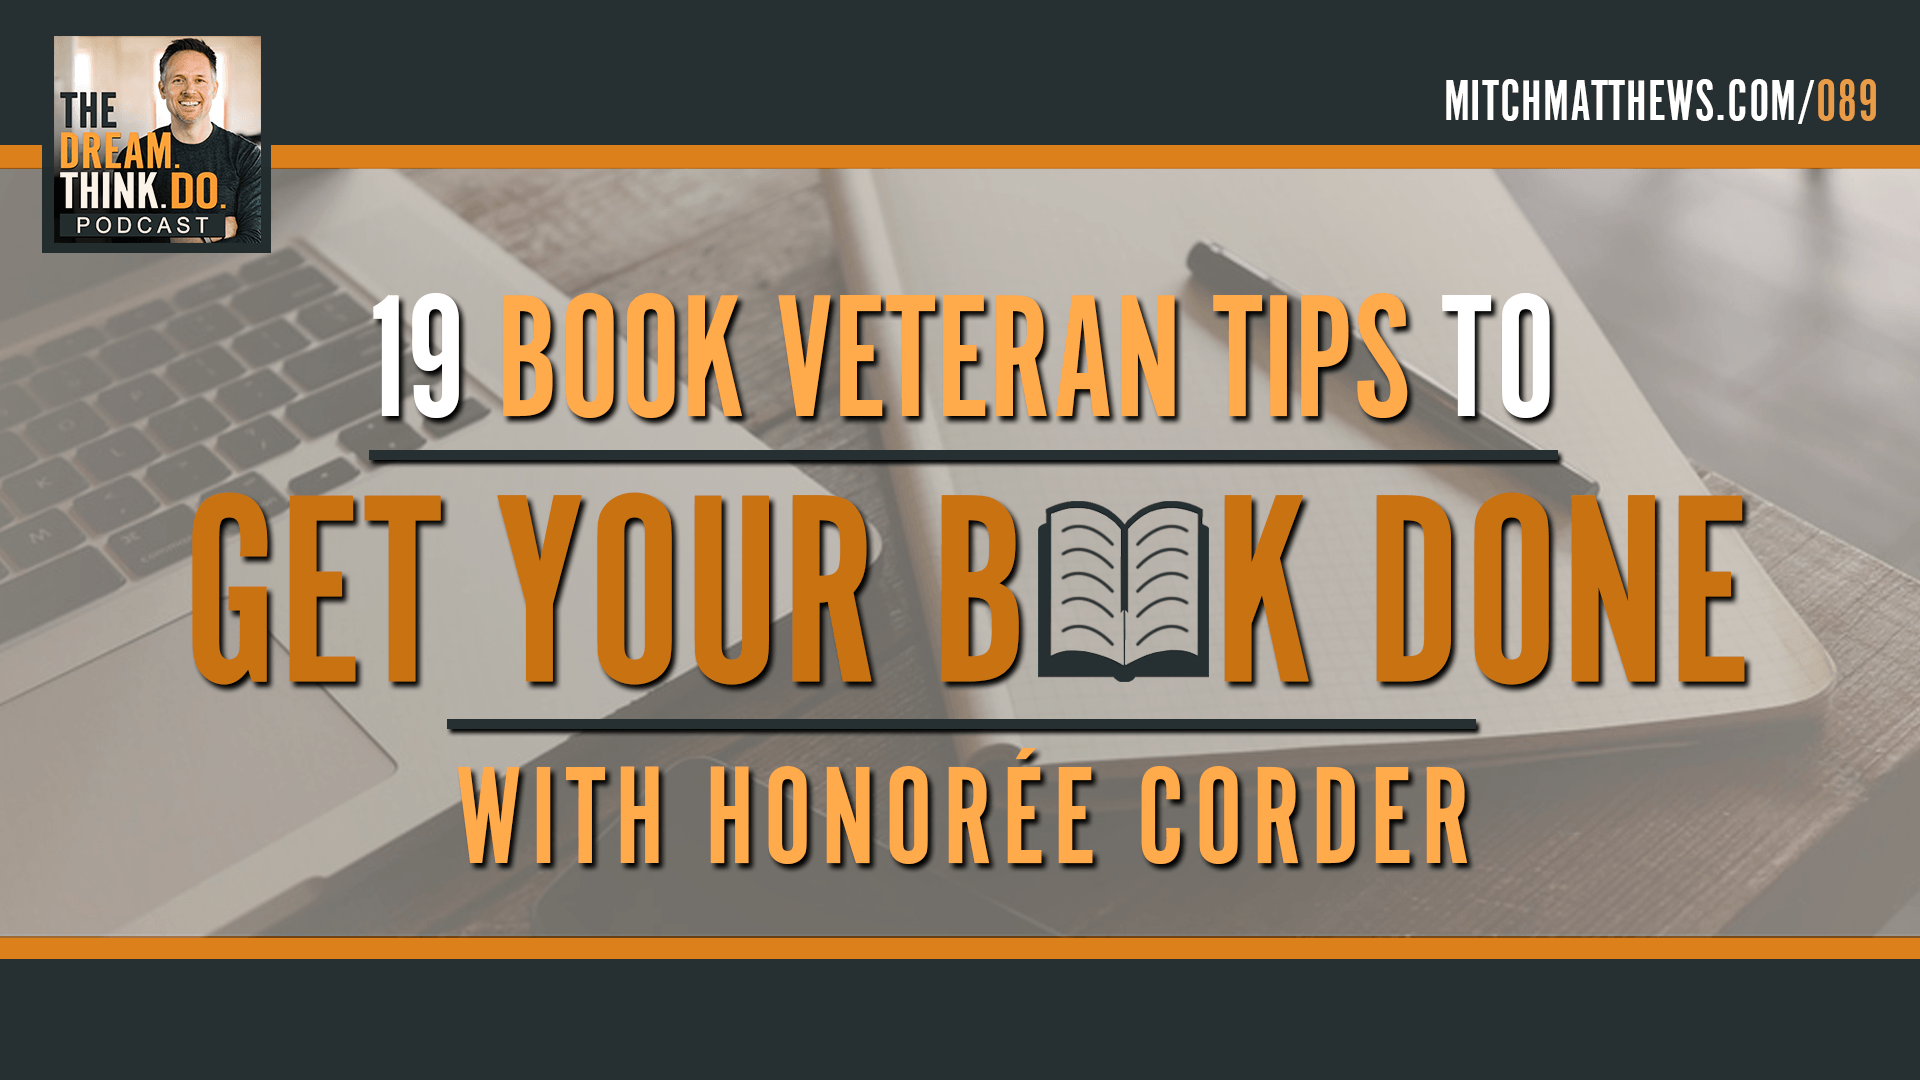 Honorée Corder | 19-Book Veteran Gives You Tips to GET YOUR BOOK DONE!